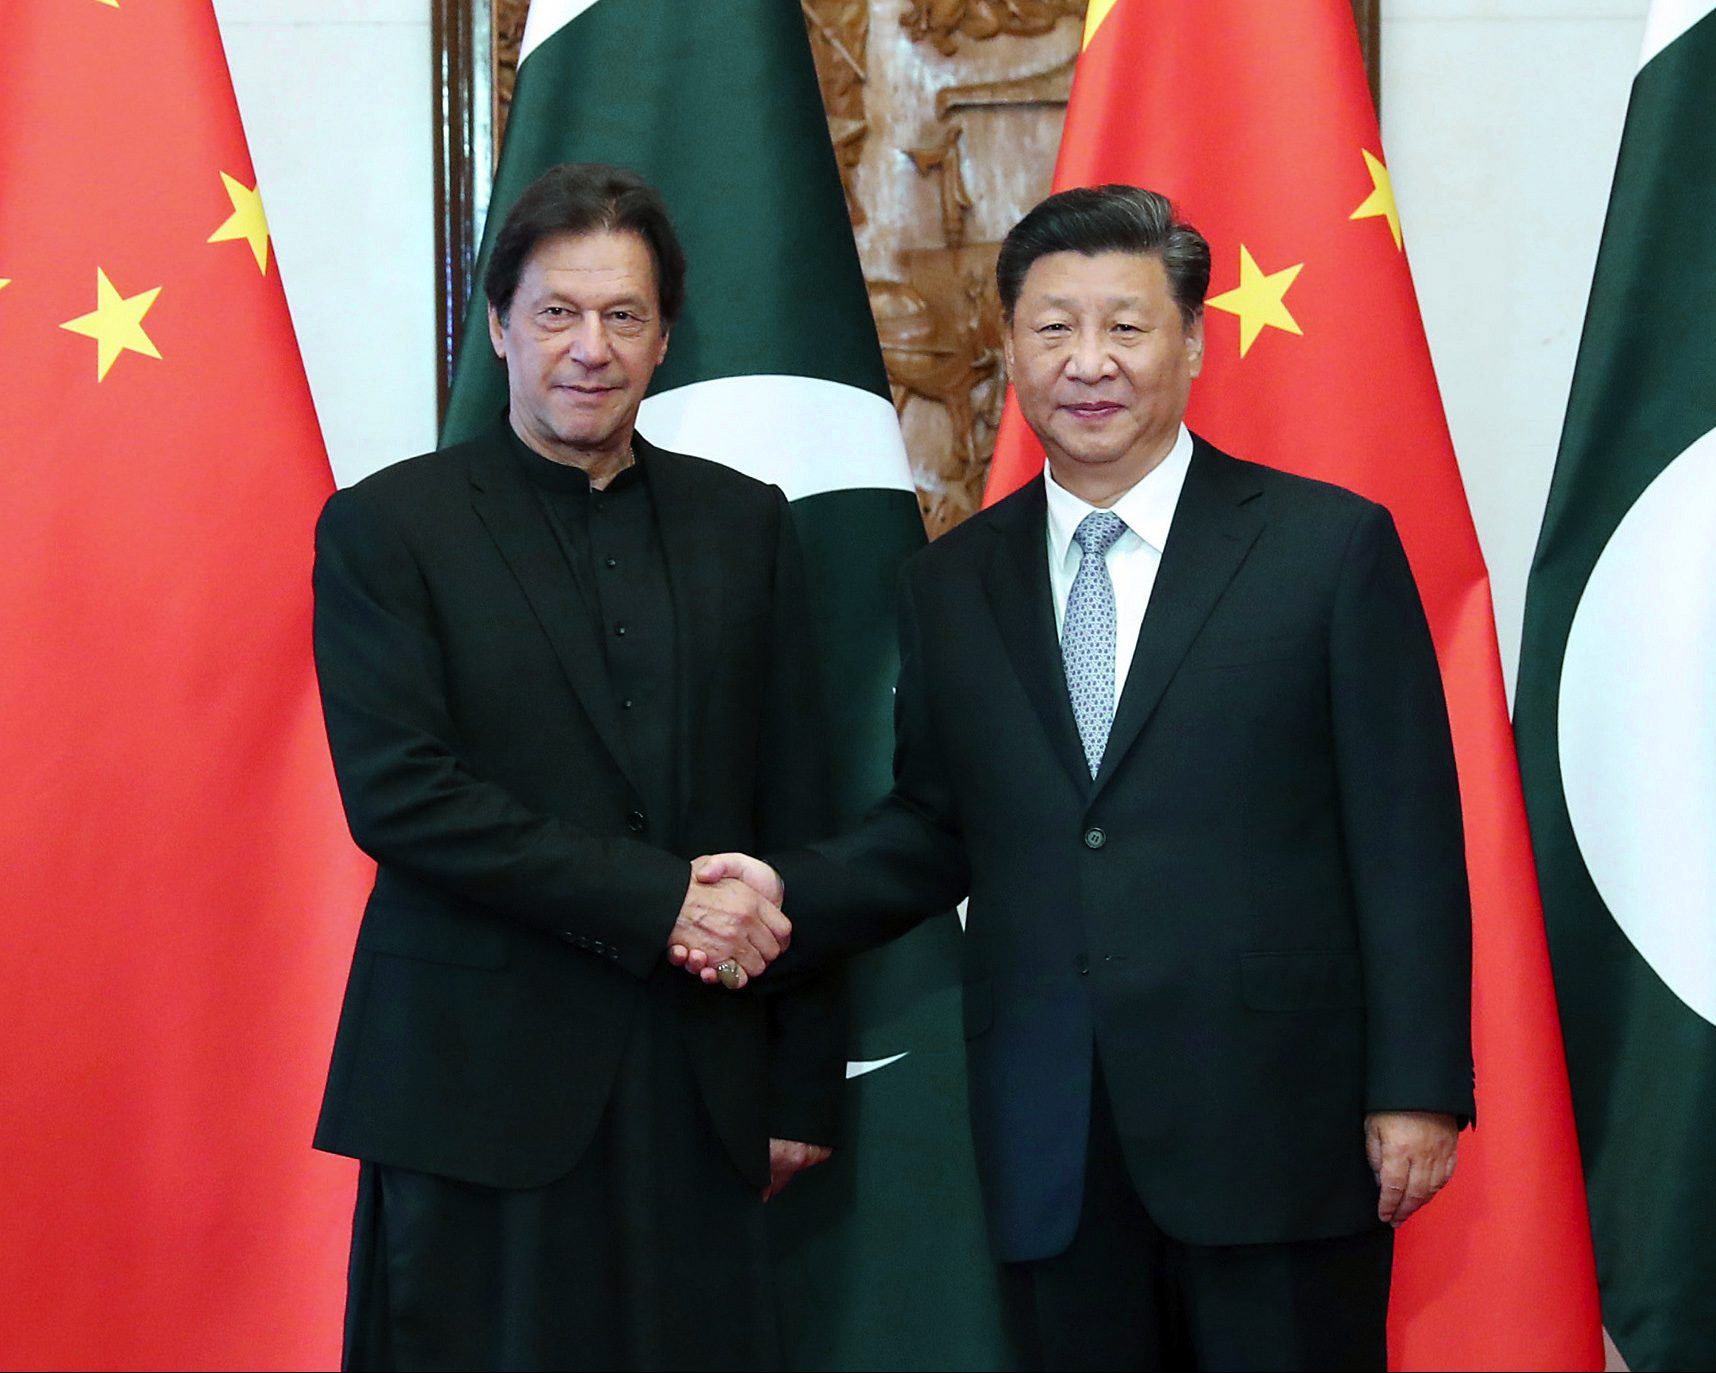 Not for others to comment on Kashmir, says India after Imran-Xi meeting